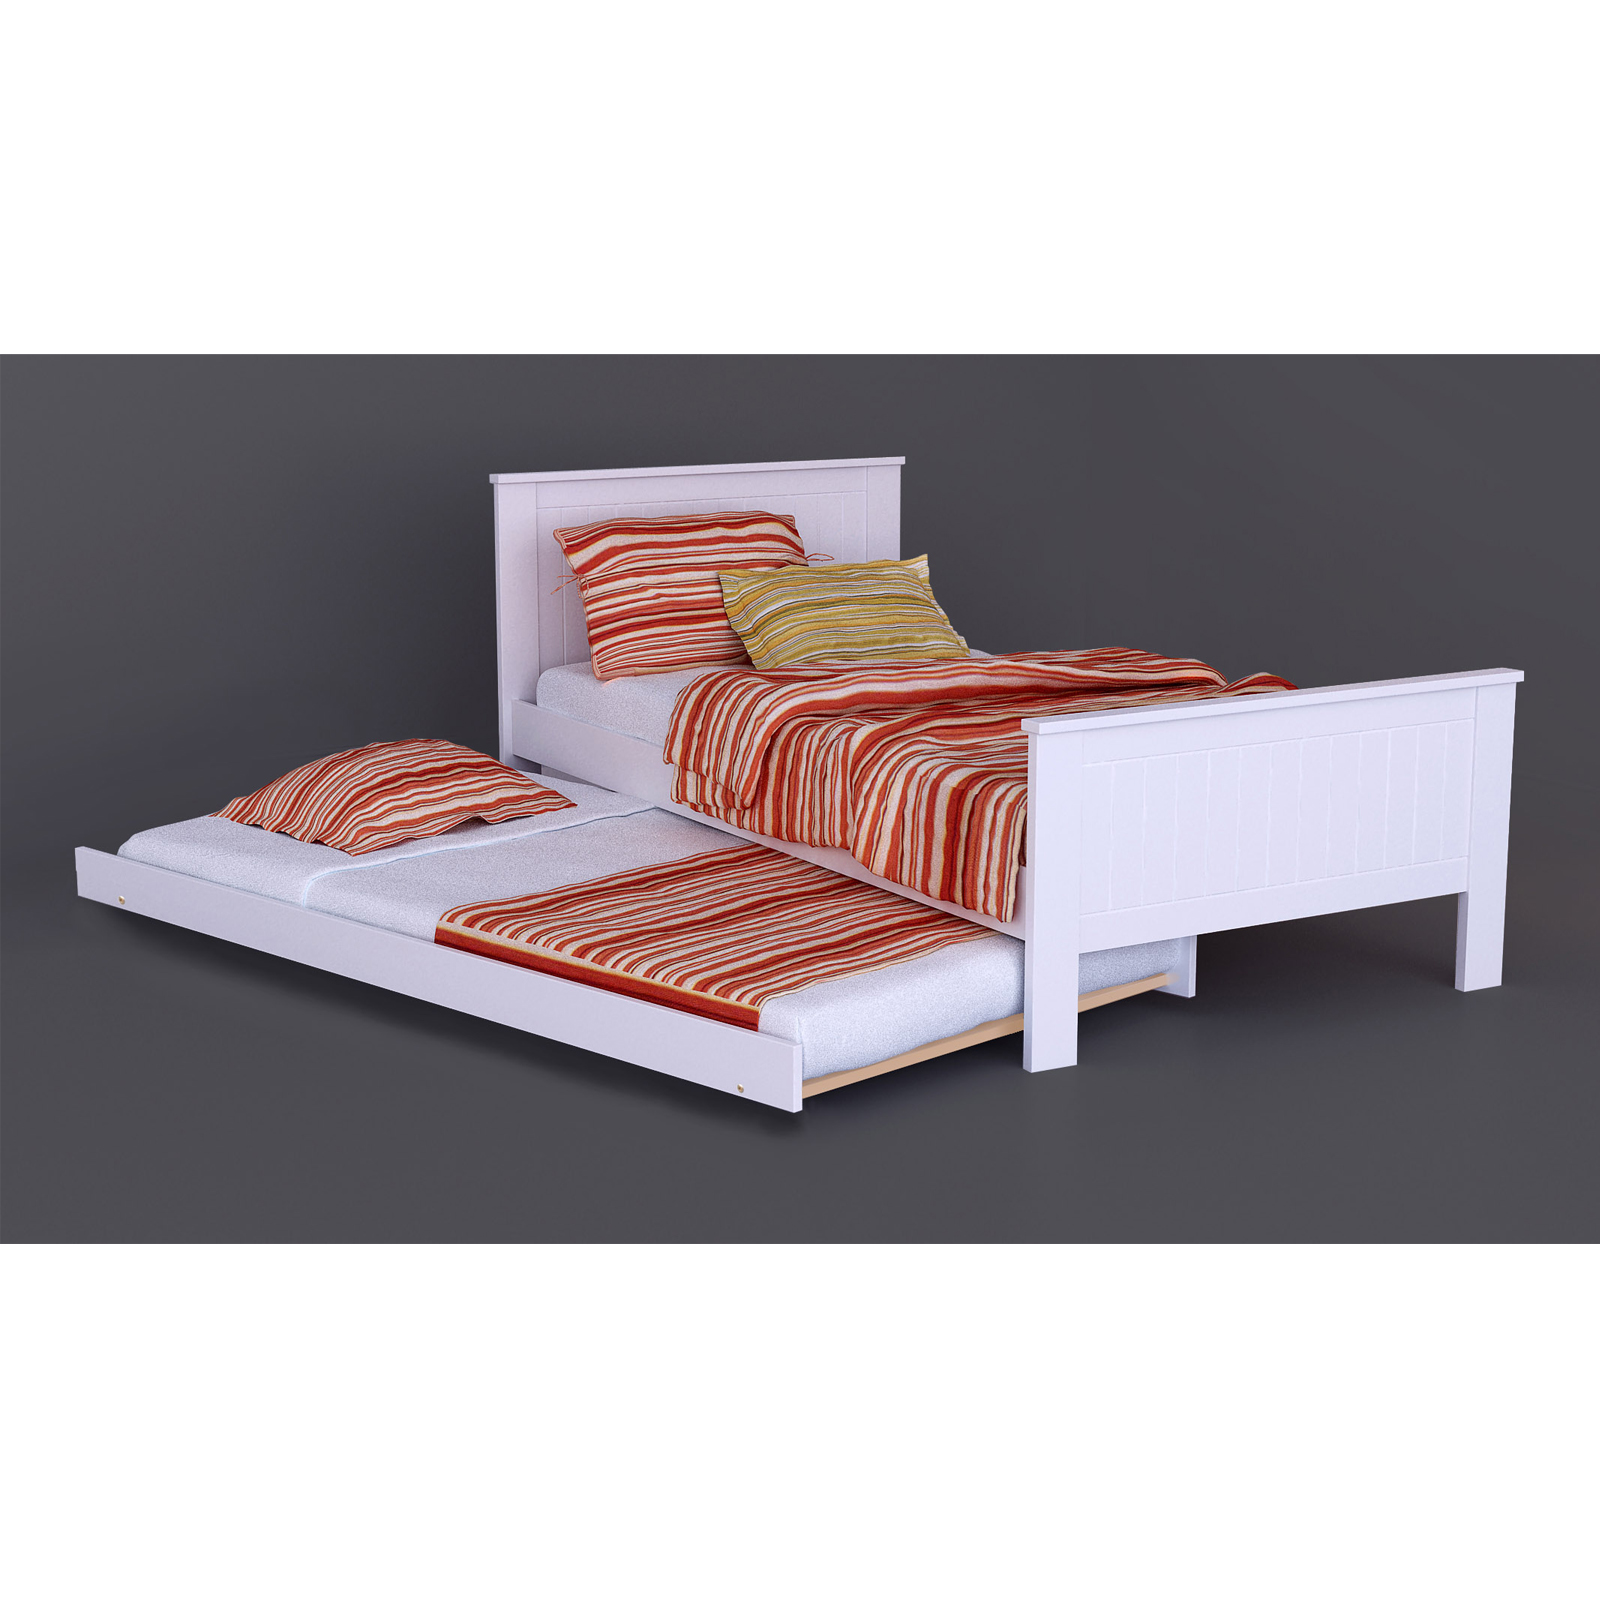 single m1 wooden bed trundle